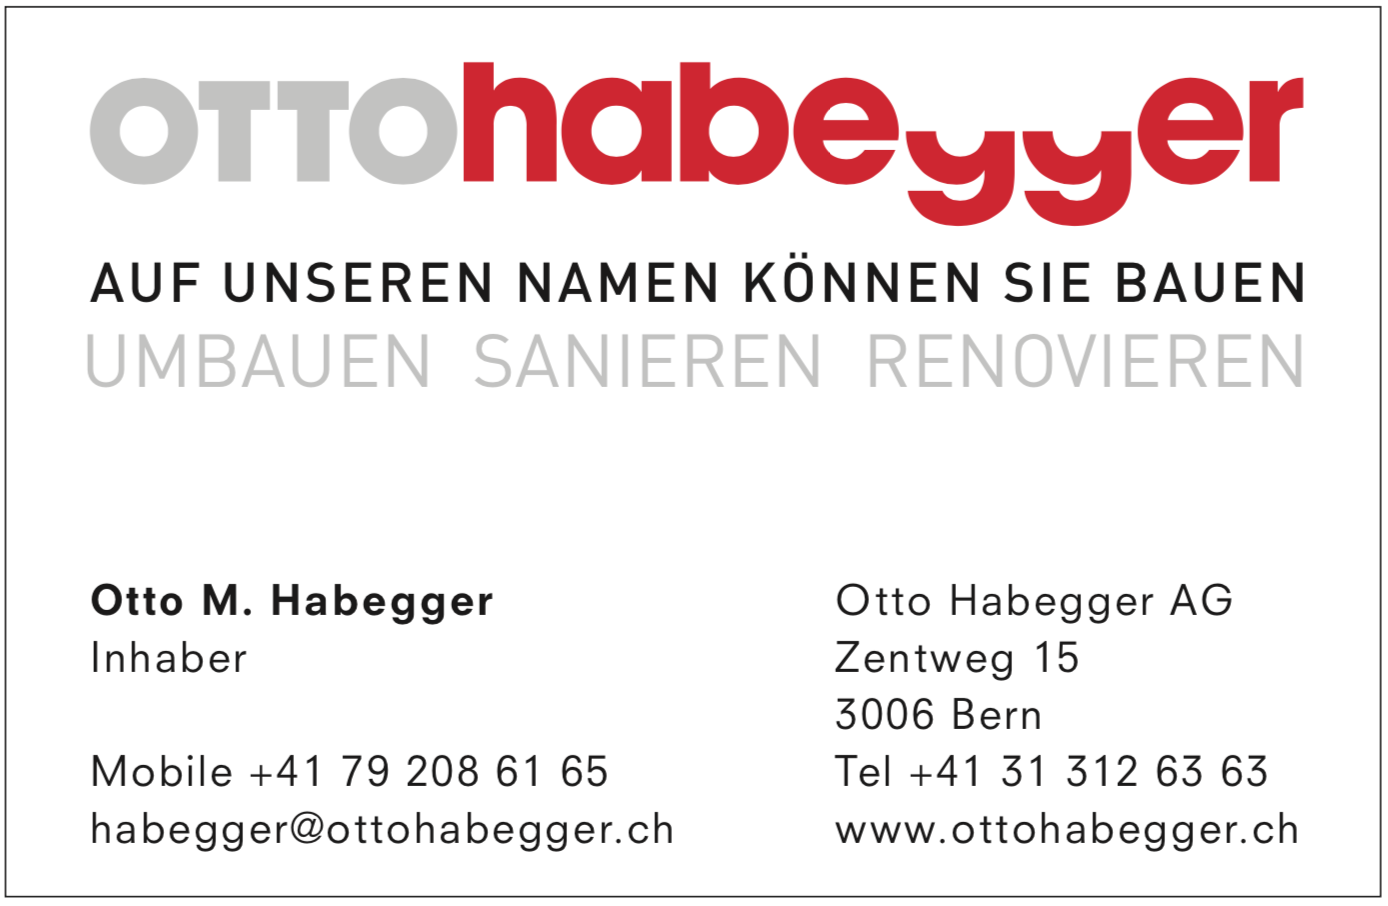 //ottohabegger.ch/wp-content/uploads/2019/07/otto.png